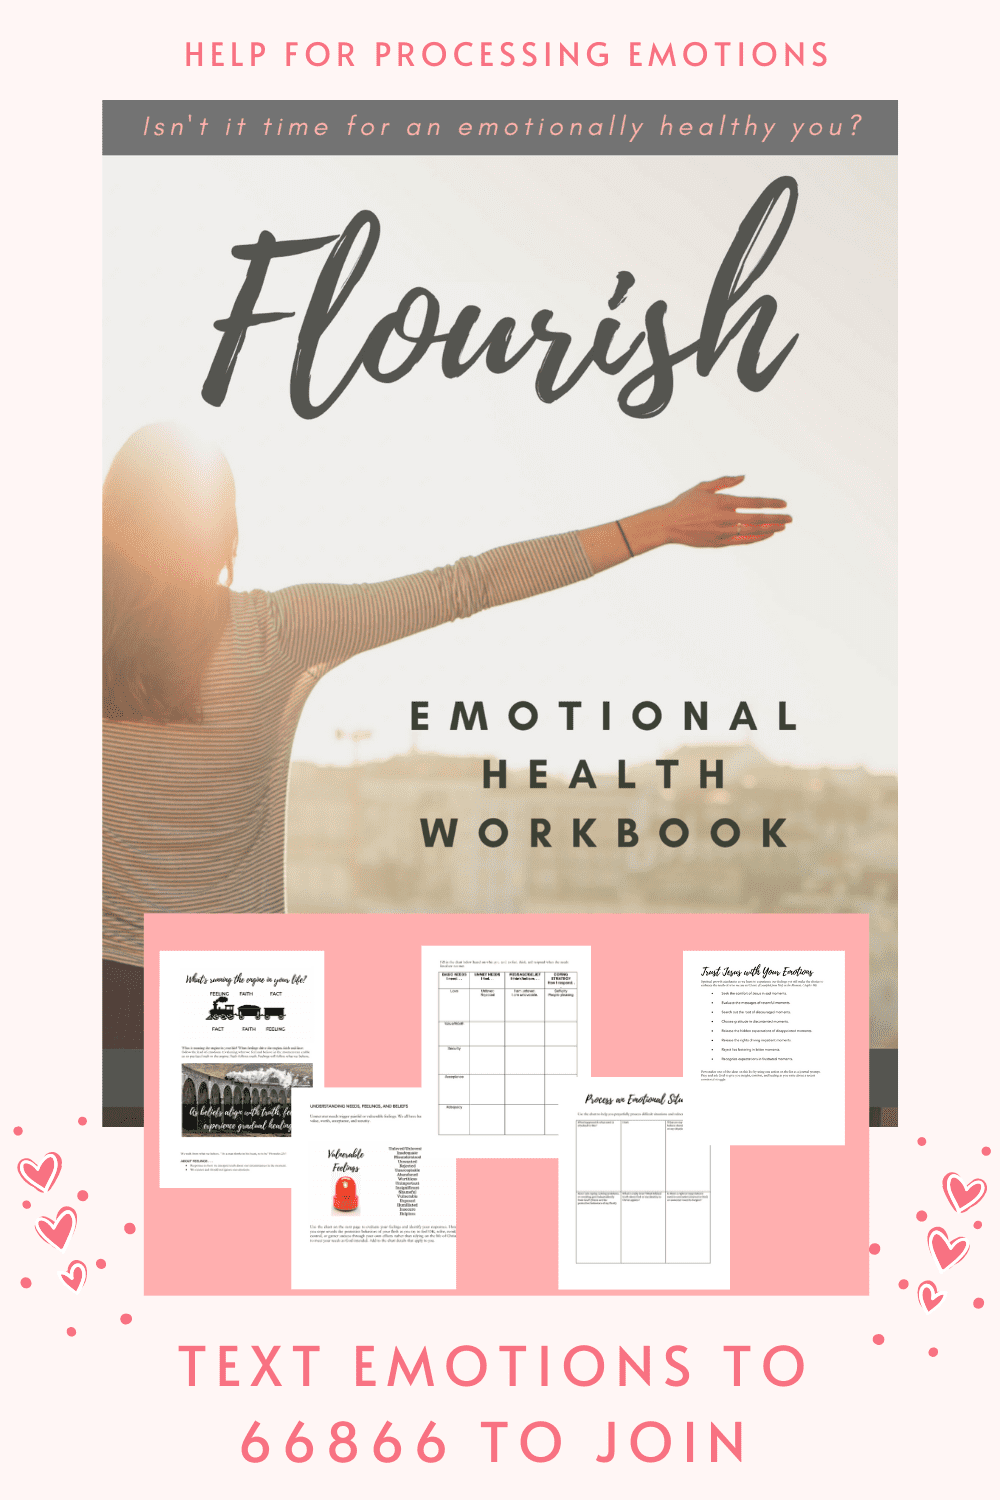 Devotional Workbook from Ginger Harrington will help you understand and process feelings for an emotionally healthy you. Learn practical tools for the deep soul work of processing your emotions with God.